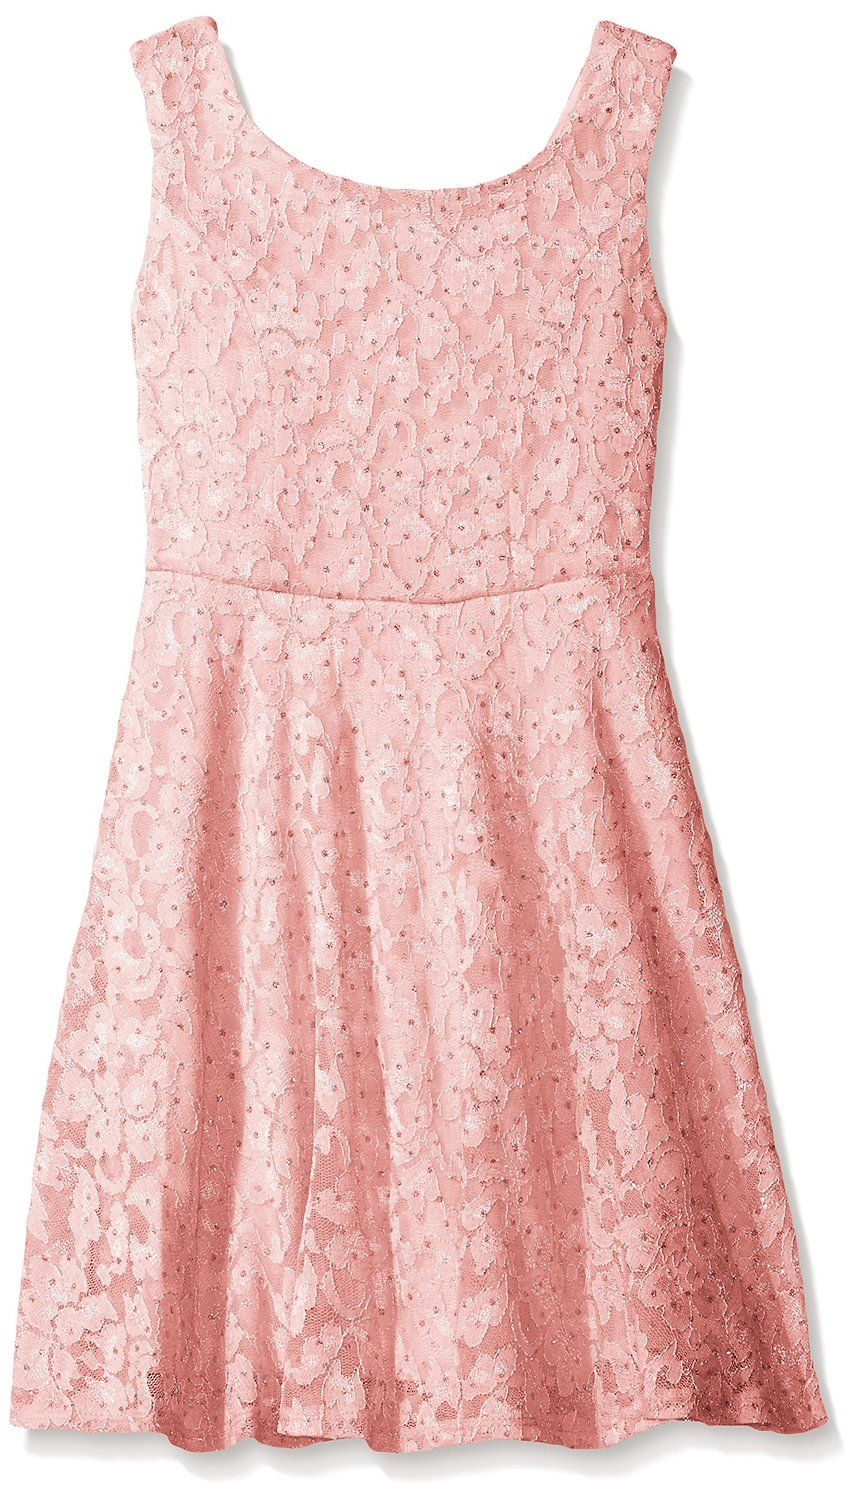 727aaf9e2e1 Amazon.com: Speechless Big Girls Lace Dress Knee Length Slv Less, Lite Pink,  10: Clothing